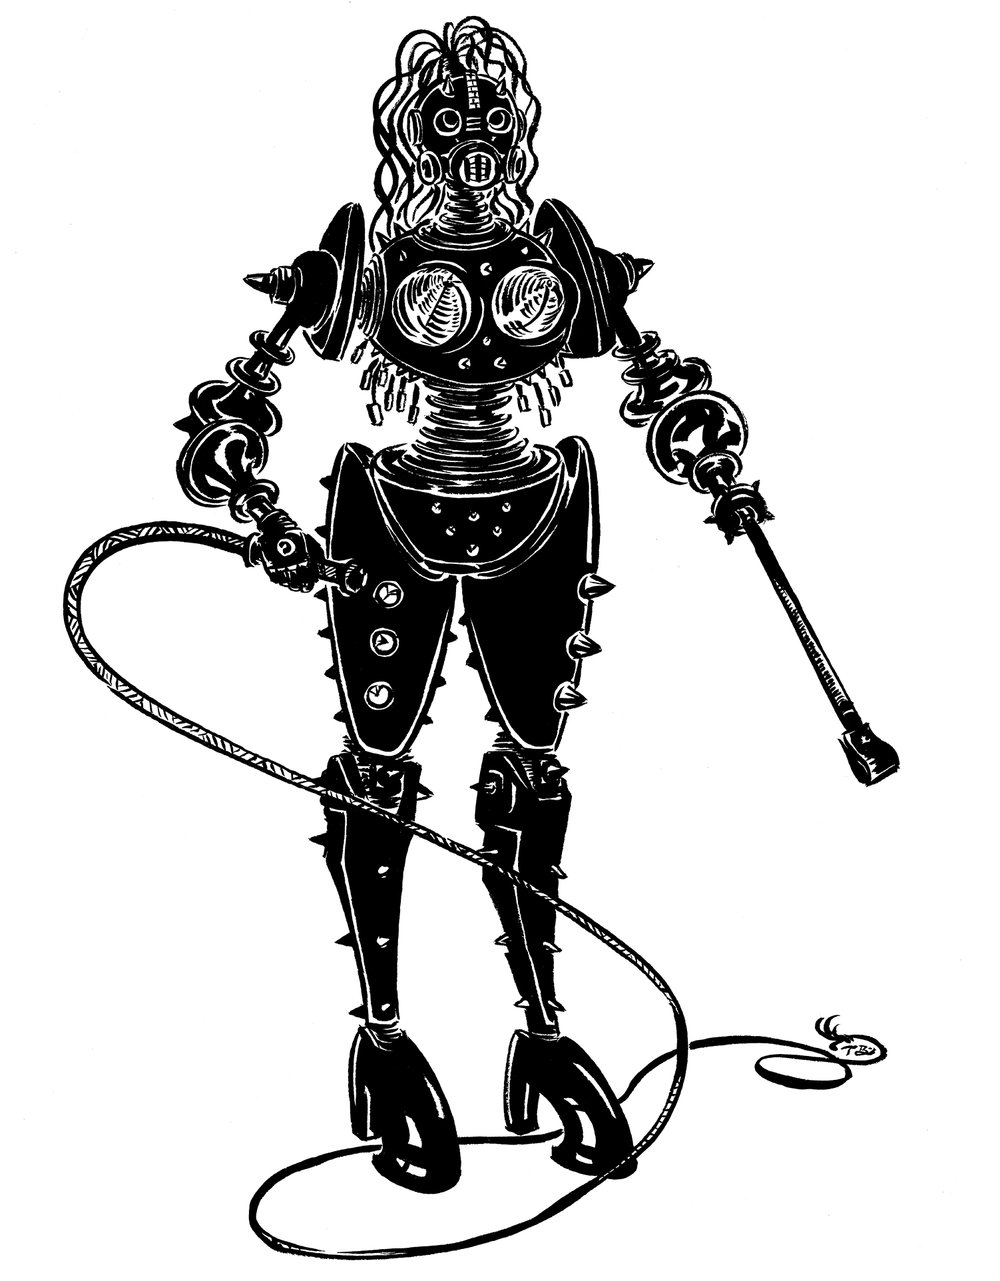 Inktober_day6_dominatrix.jpg